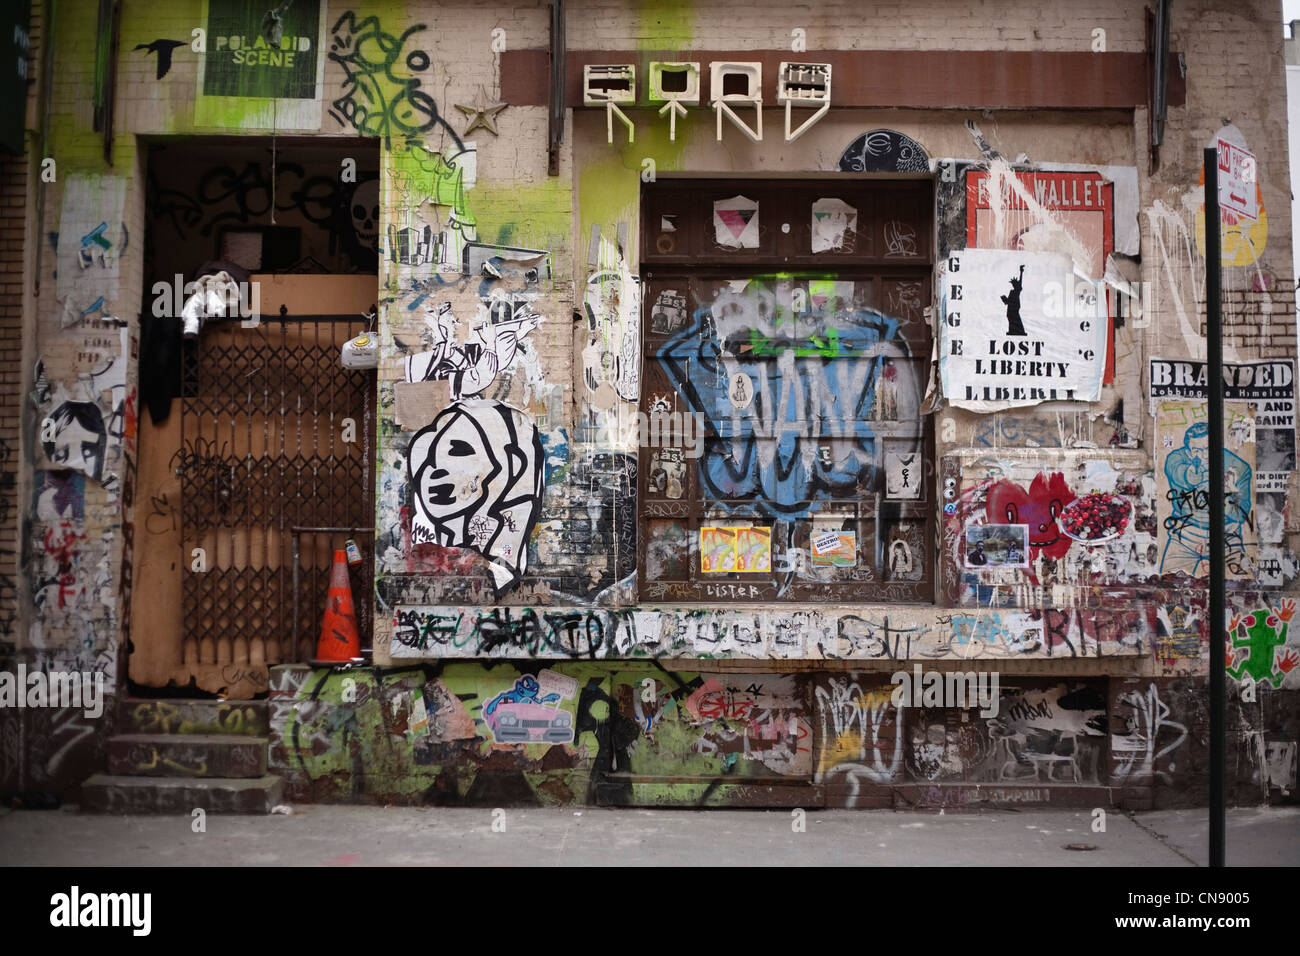 Vacant property covered in graffiti, SoHo district, Manhattan, New York City, New York, USA - Stock Image